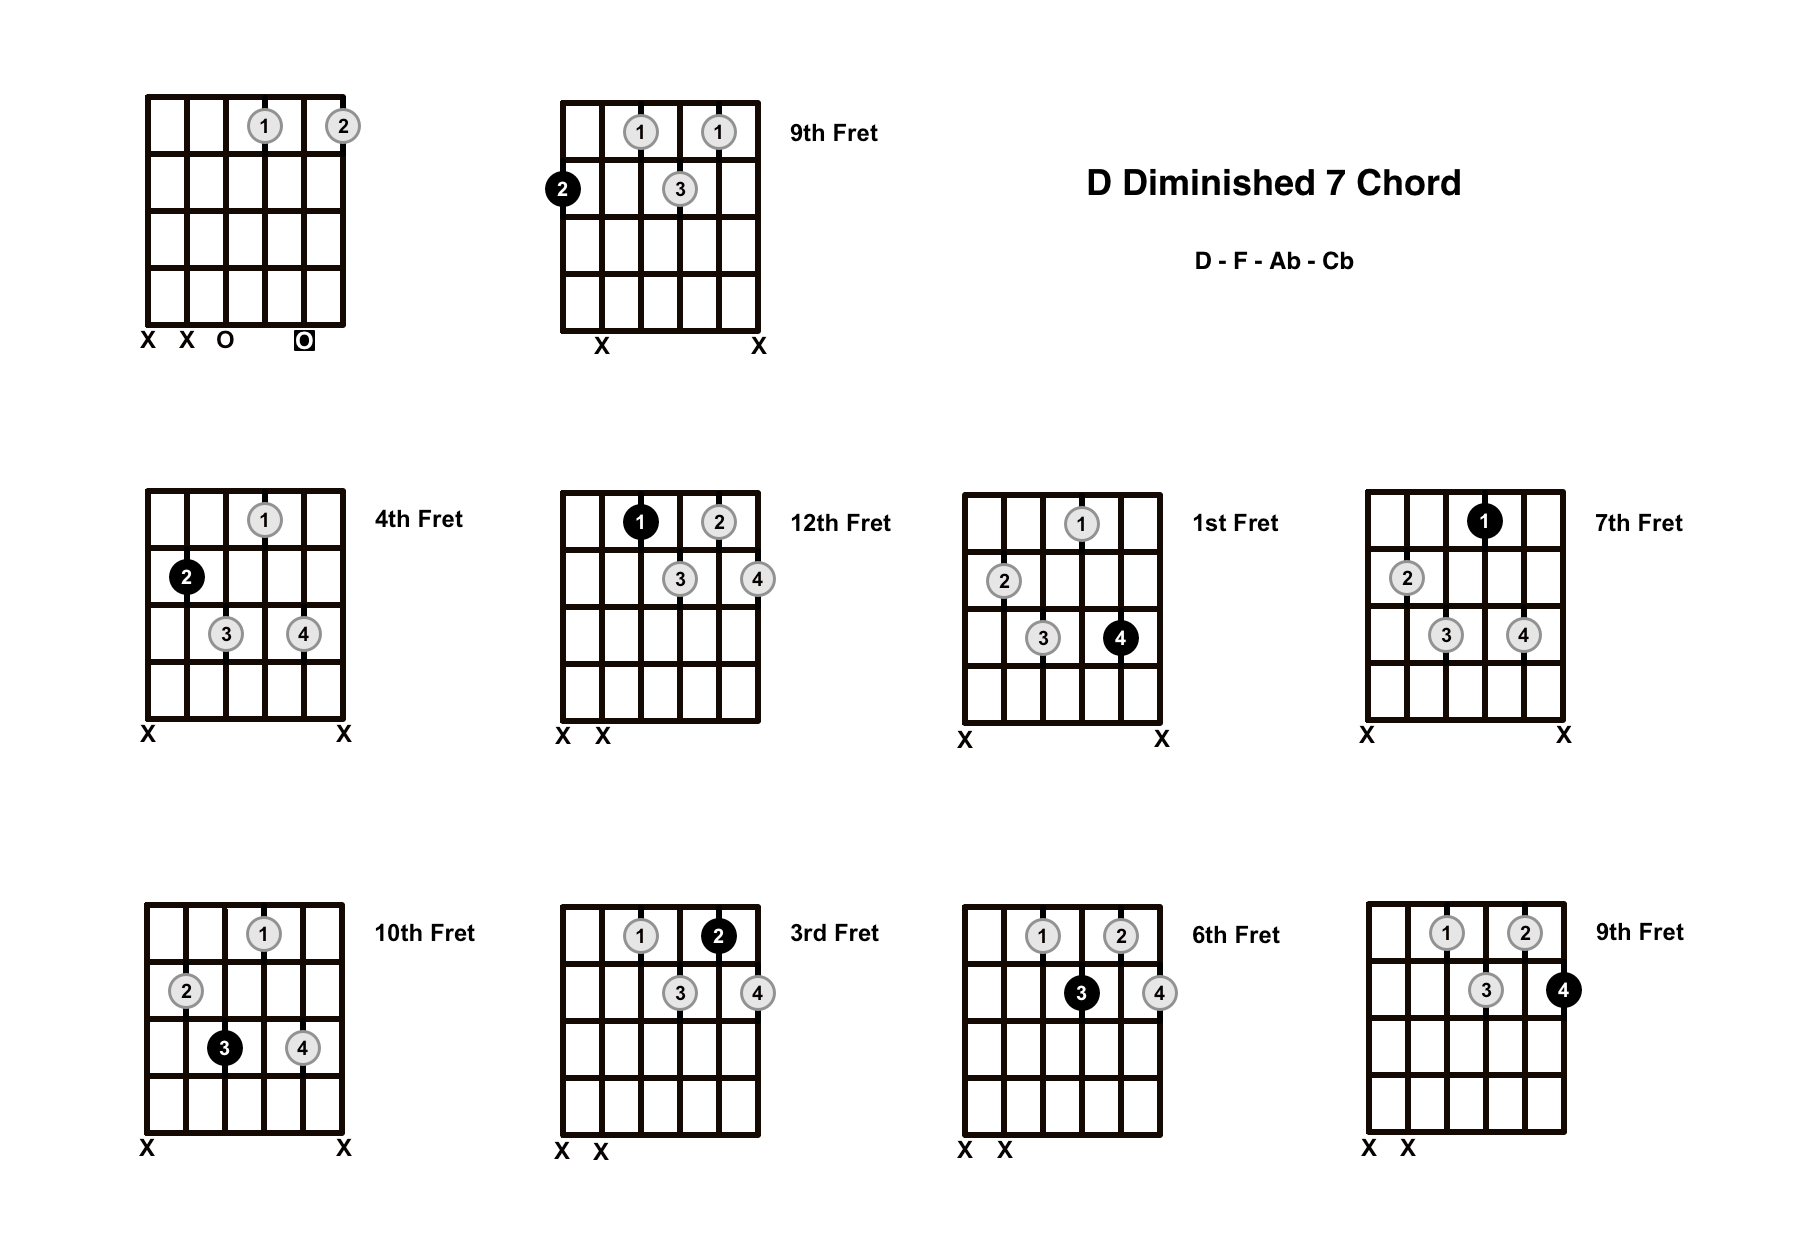 D Diminished 7 Chord On The Guitar (D Dim 7) – Diagrams, Finger Positions and Theory